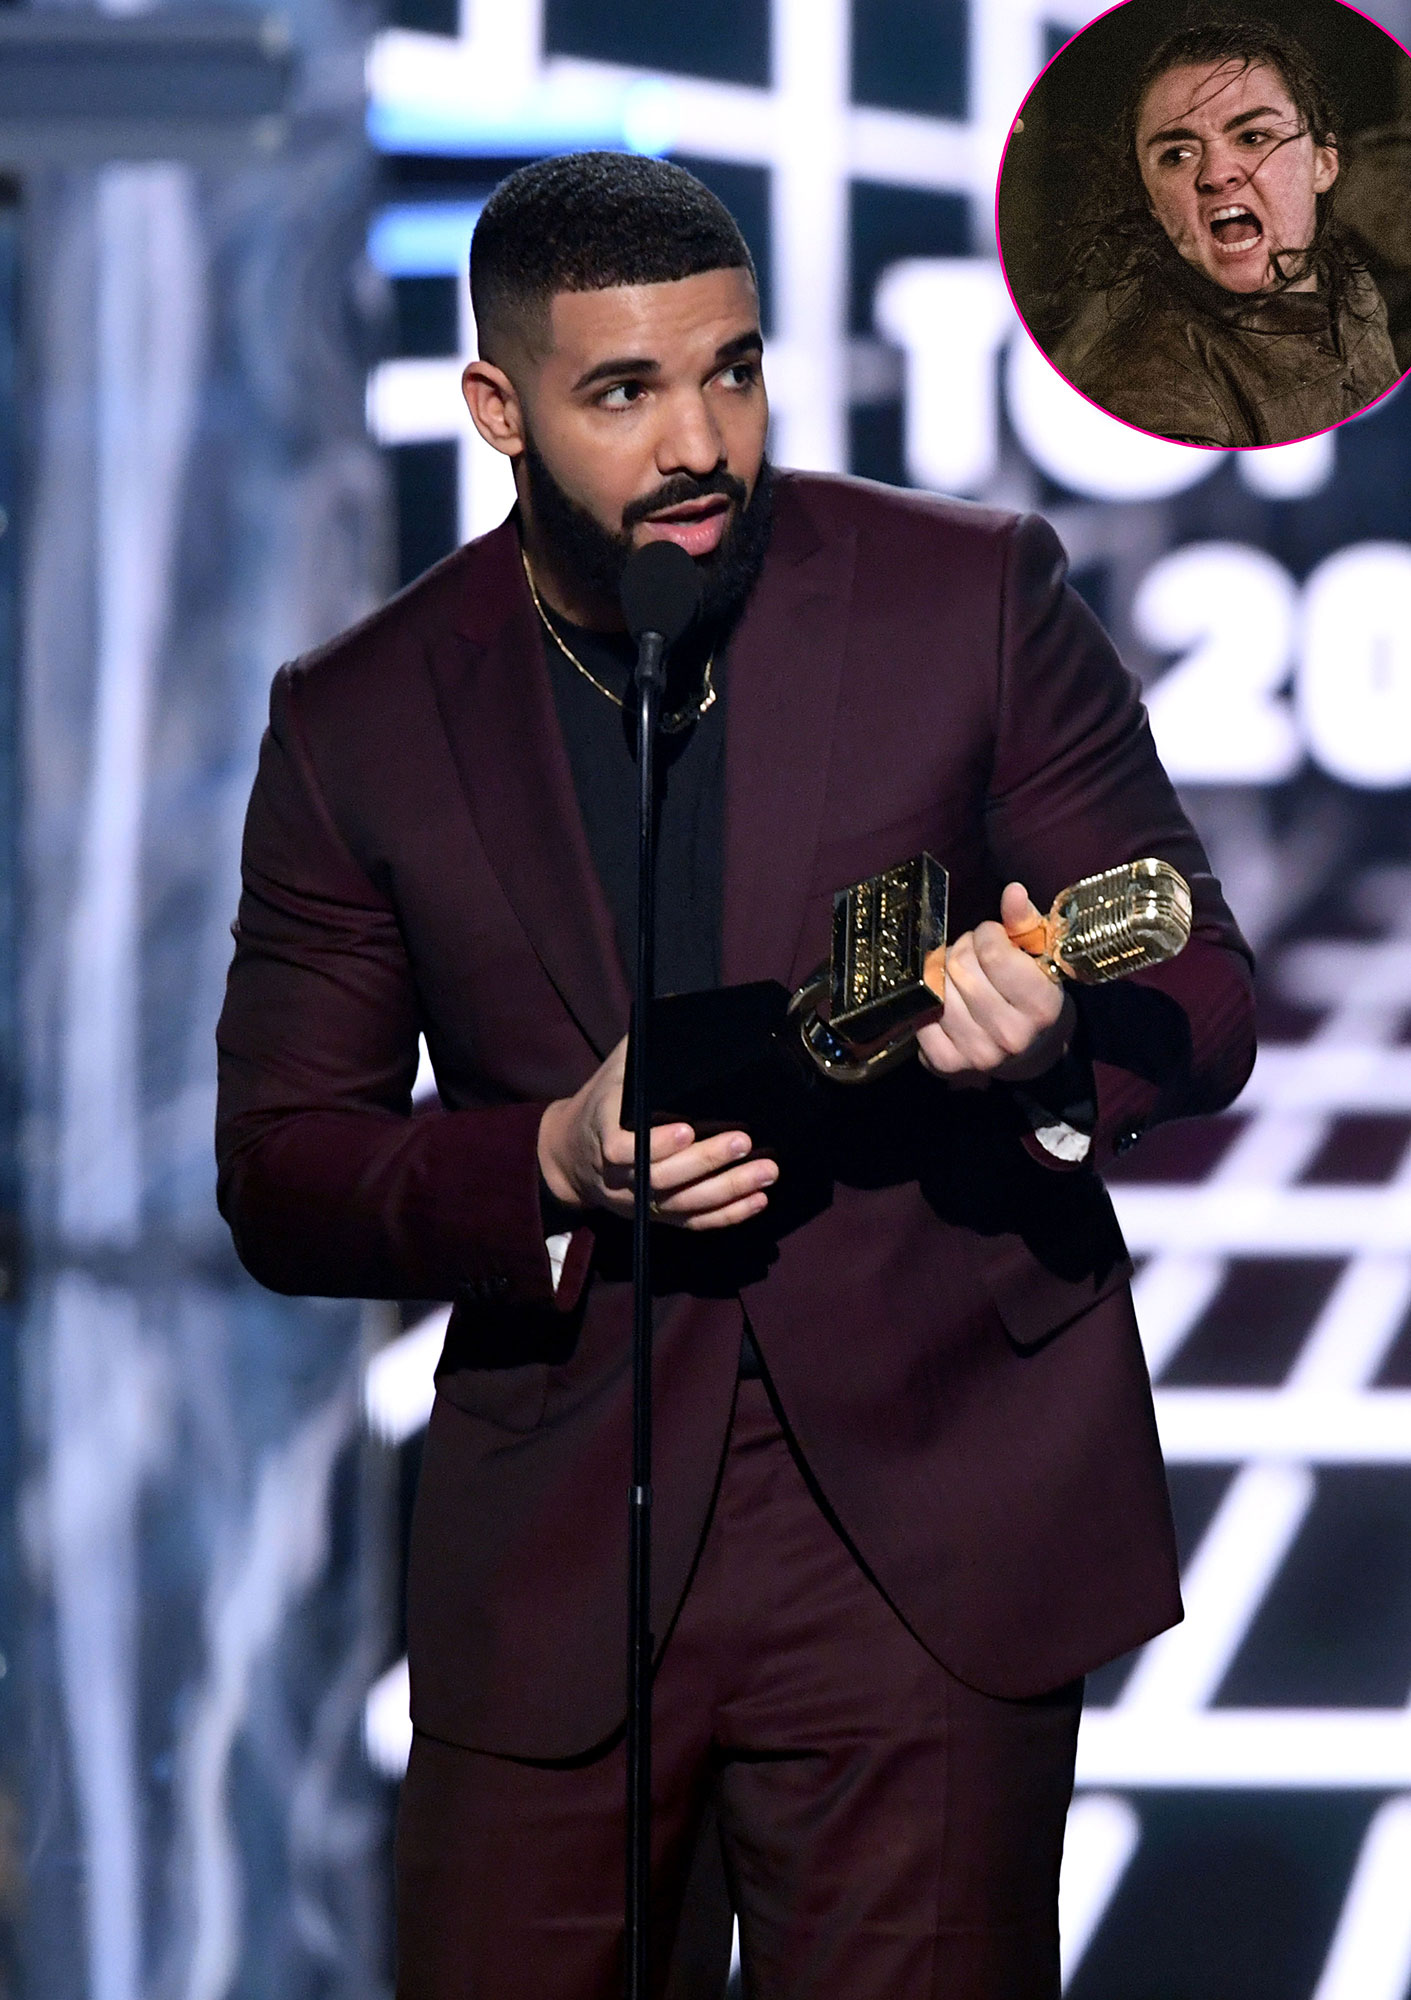 "Drake-Calls-Out-Arya-Stark-Billboard-Music-Awards-2019 - Drake gave a nod to Maisie Williams ' Game of Thrones character in his acceptance speech for Top Billboard 200 Album. ""Shout-out to Arya Stark for putting in that work last weekend,"" he joked, referring to the epic ""Battle of Winterfell"" episode of the HBO series."